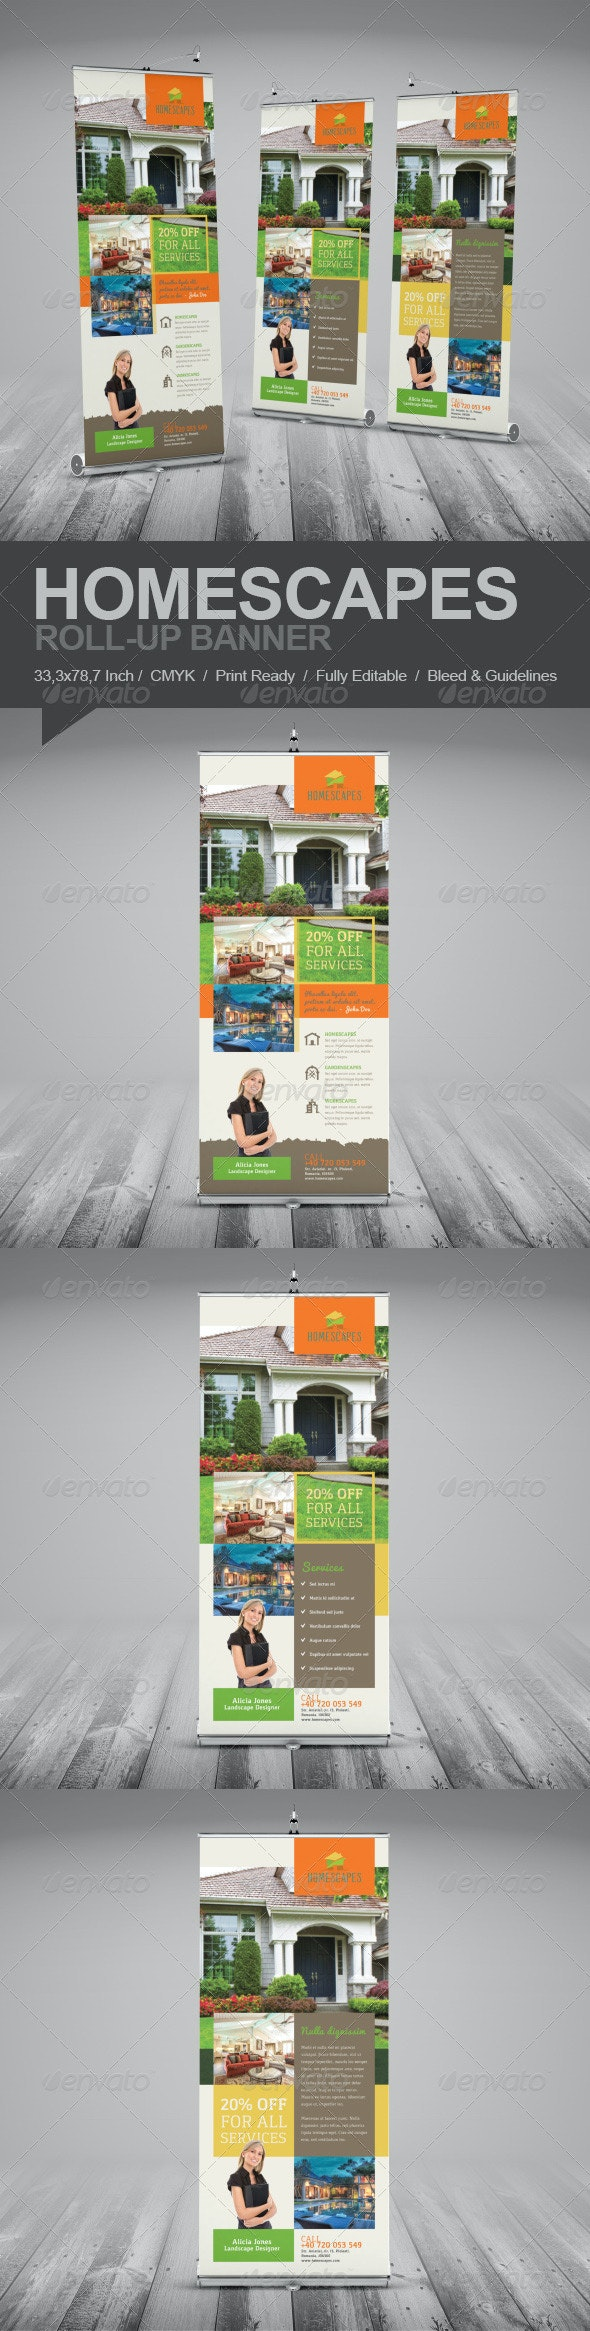 Real Estate And Homescapes Roll-Up Banner - Signage Print Templates